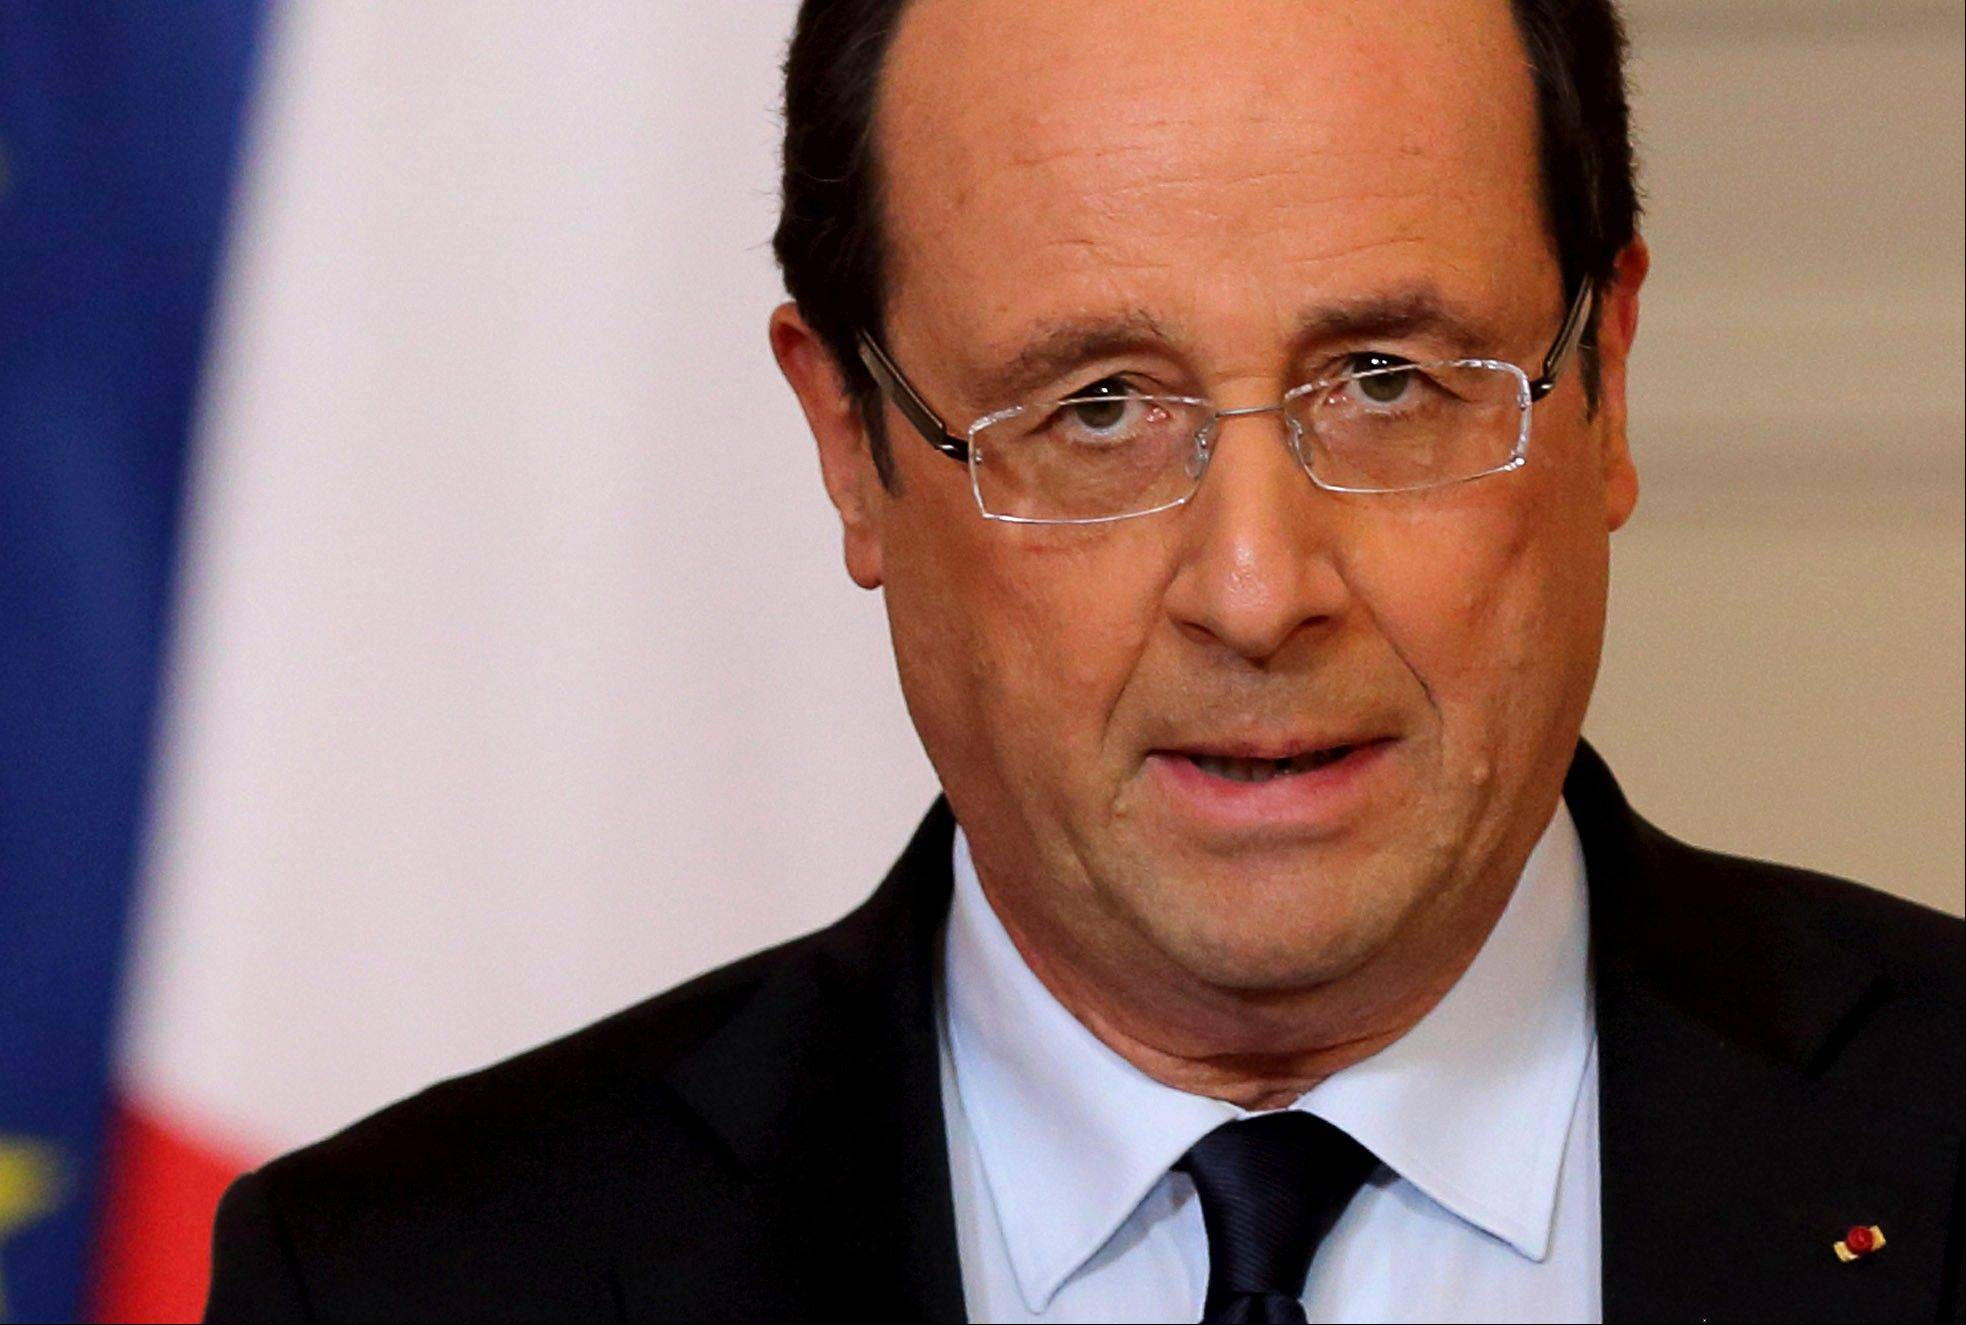 France�s President Francois Hollande delivers a speech Friday on the situation in Mali at the Elysee Palace in Paris.